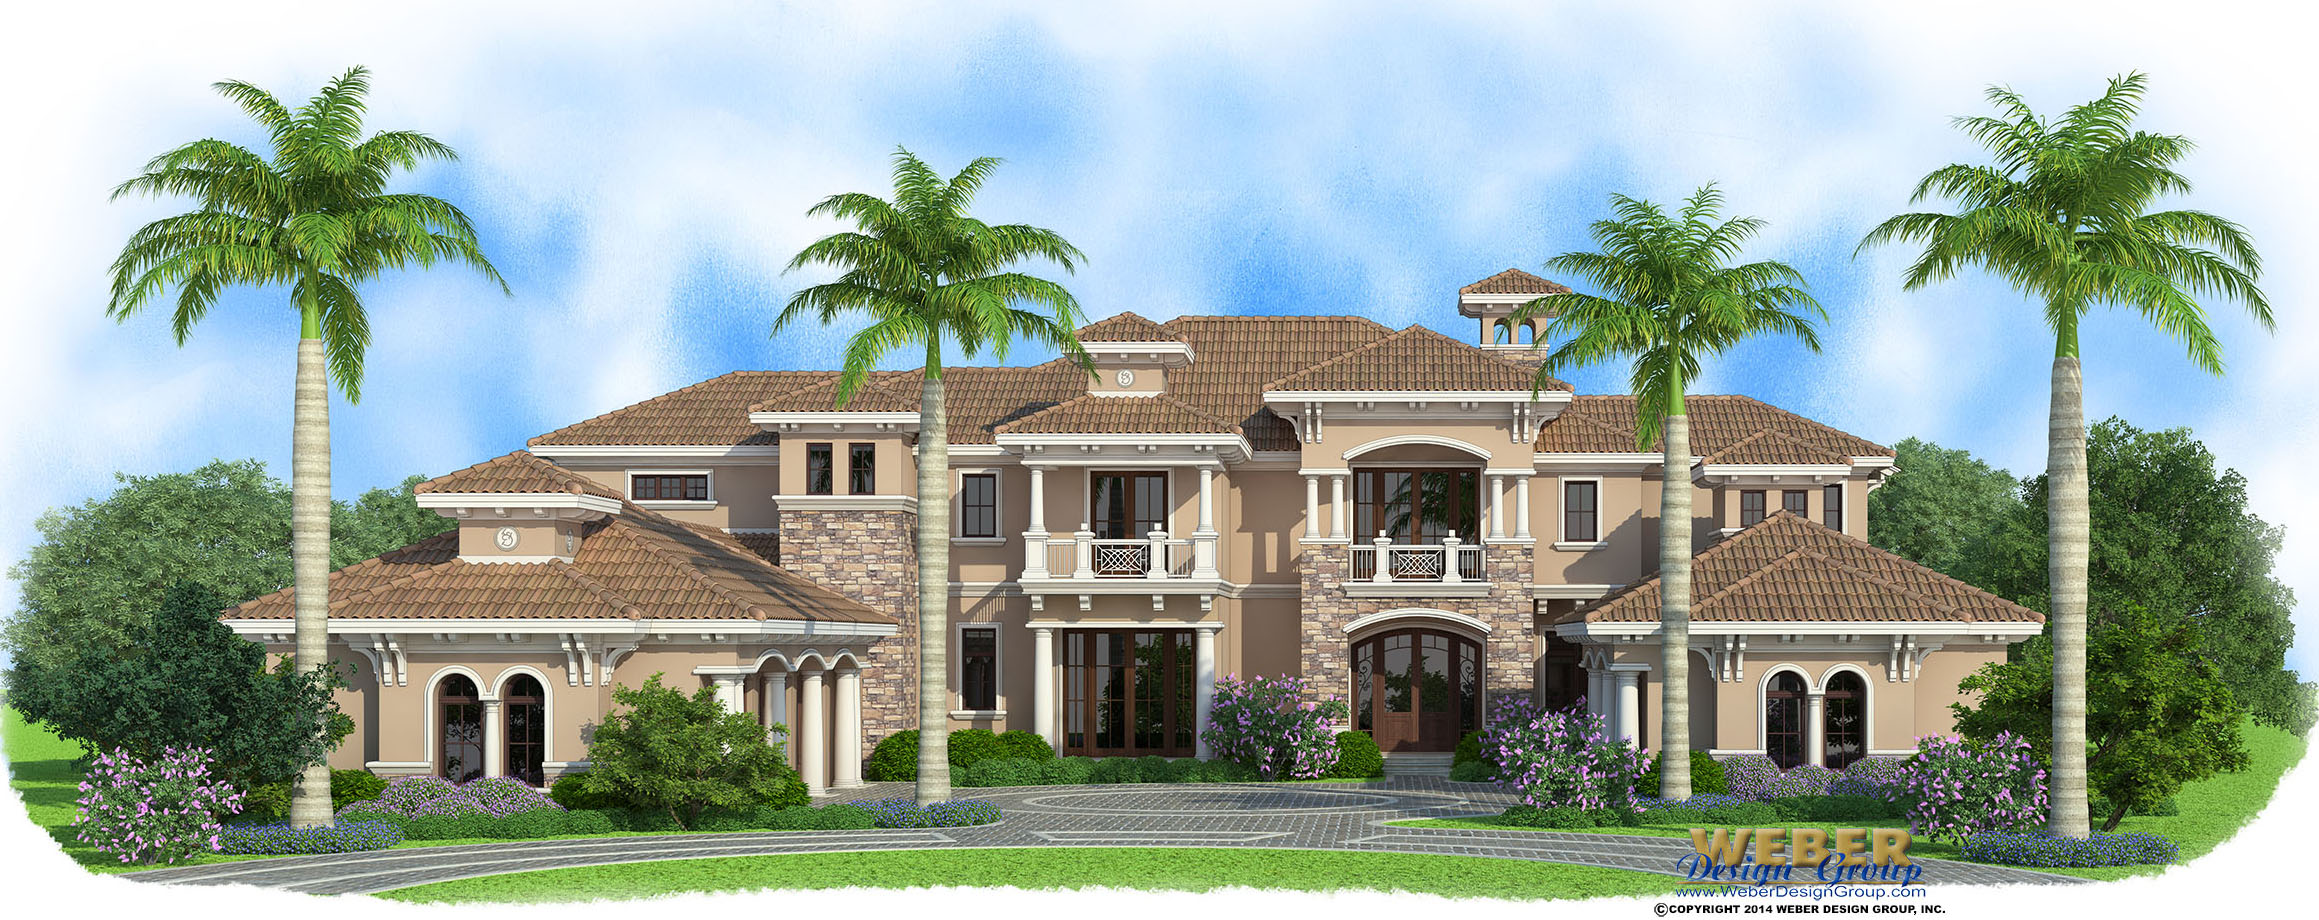 Golf Course Estate Home By Naples Architect Weber